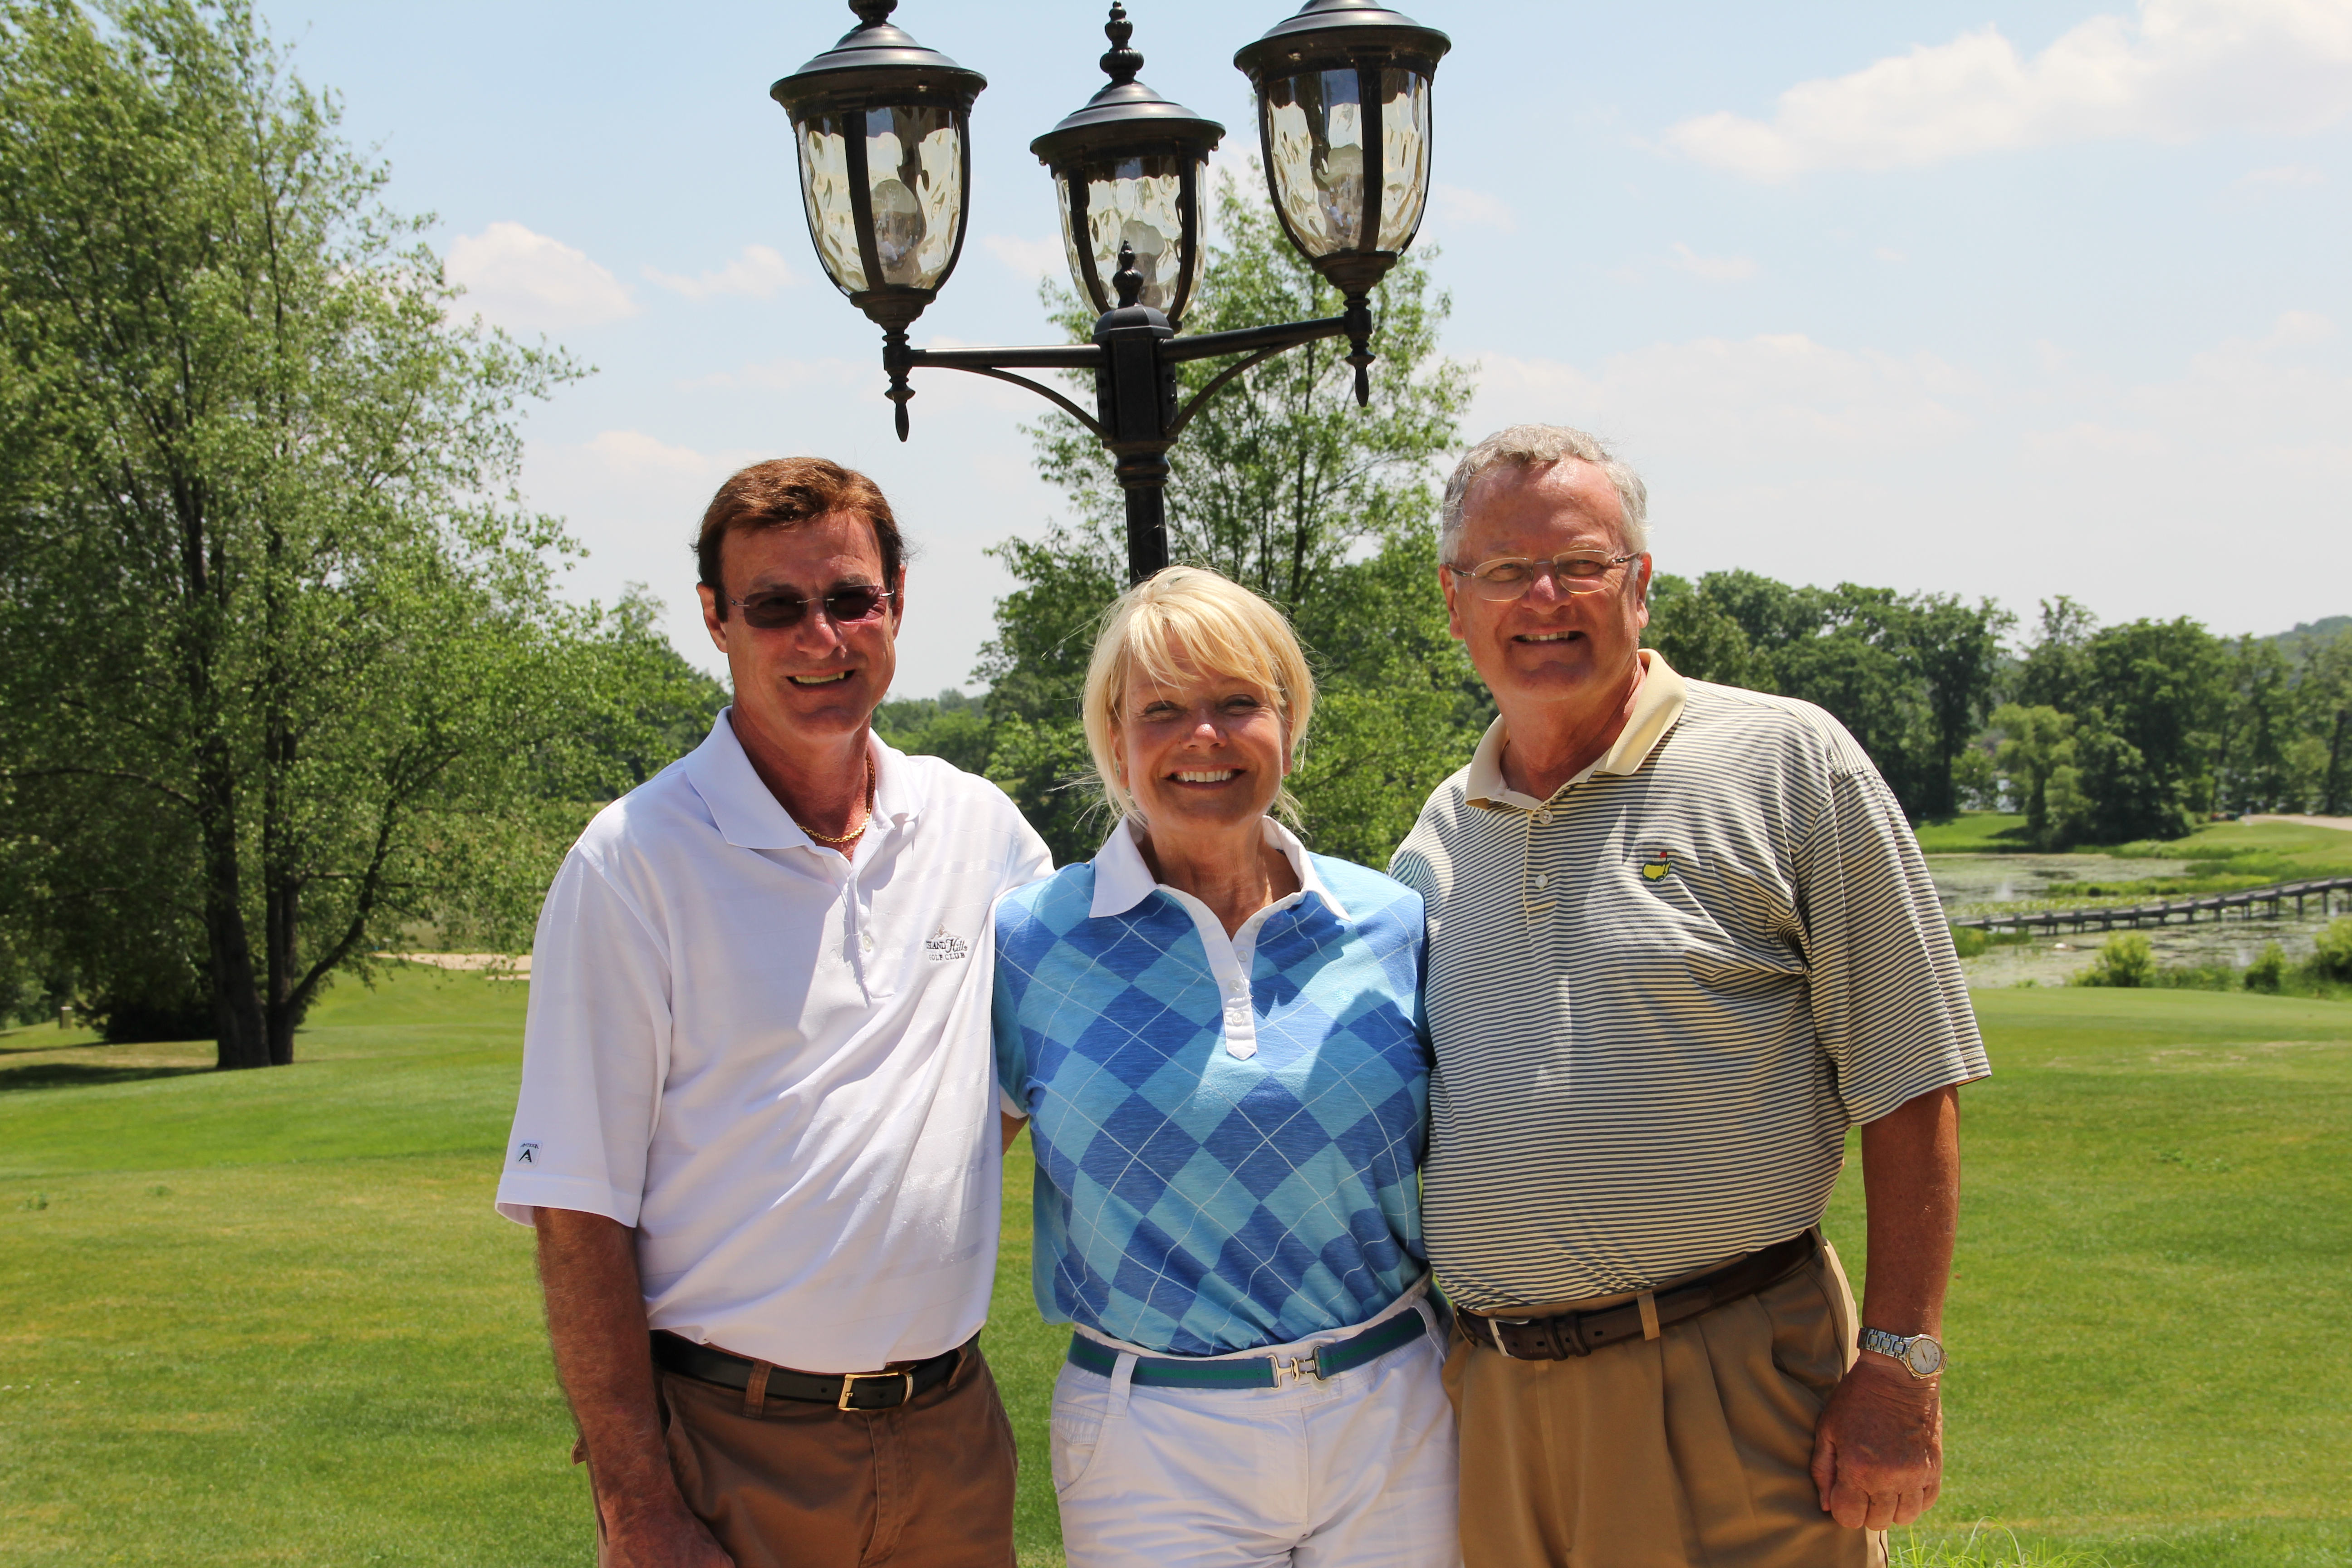 With Joy and Bob Griffioen, owner of Island Hills -- one of my favorite Michigan courses.